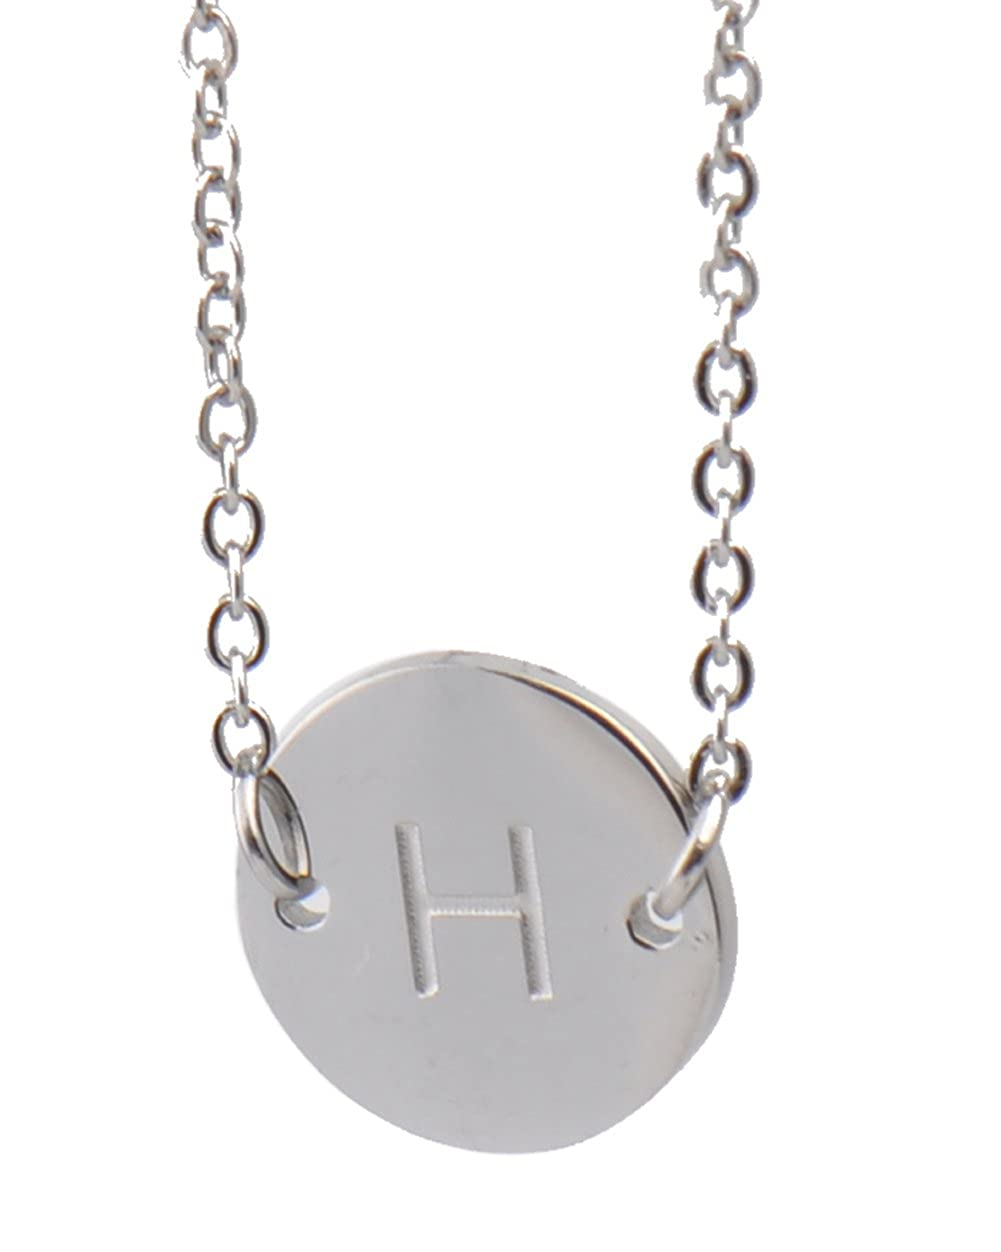 LikeFun Stainless Steel Danity Bracelet Initial H Thin Chain Silver Jewelry Friendship Gifts